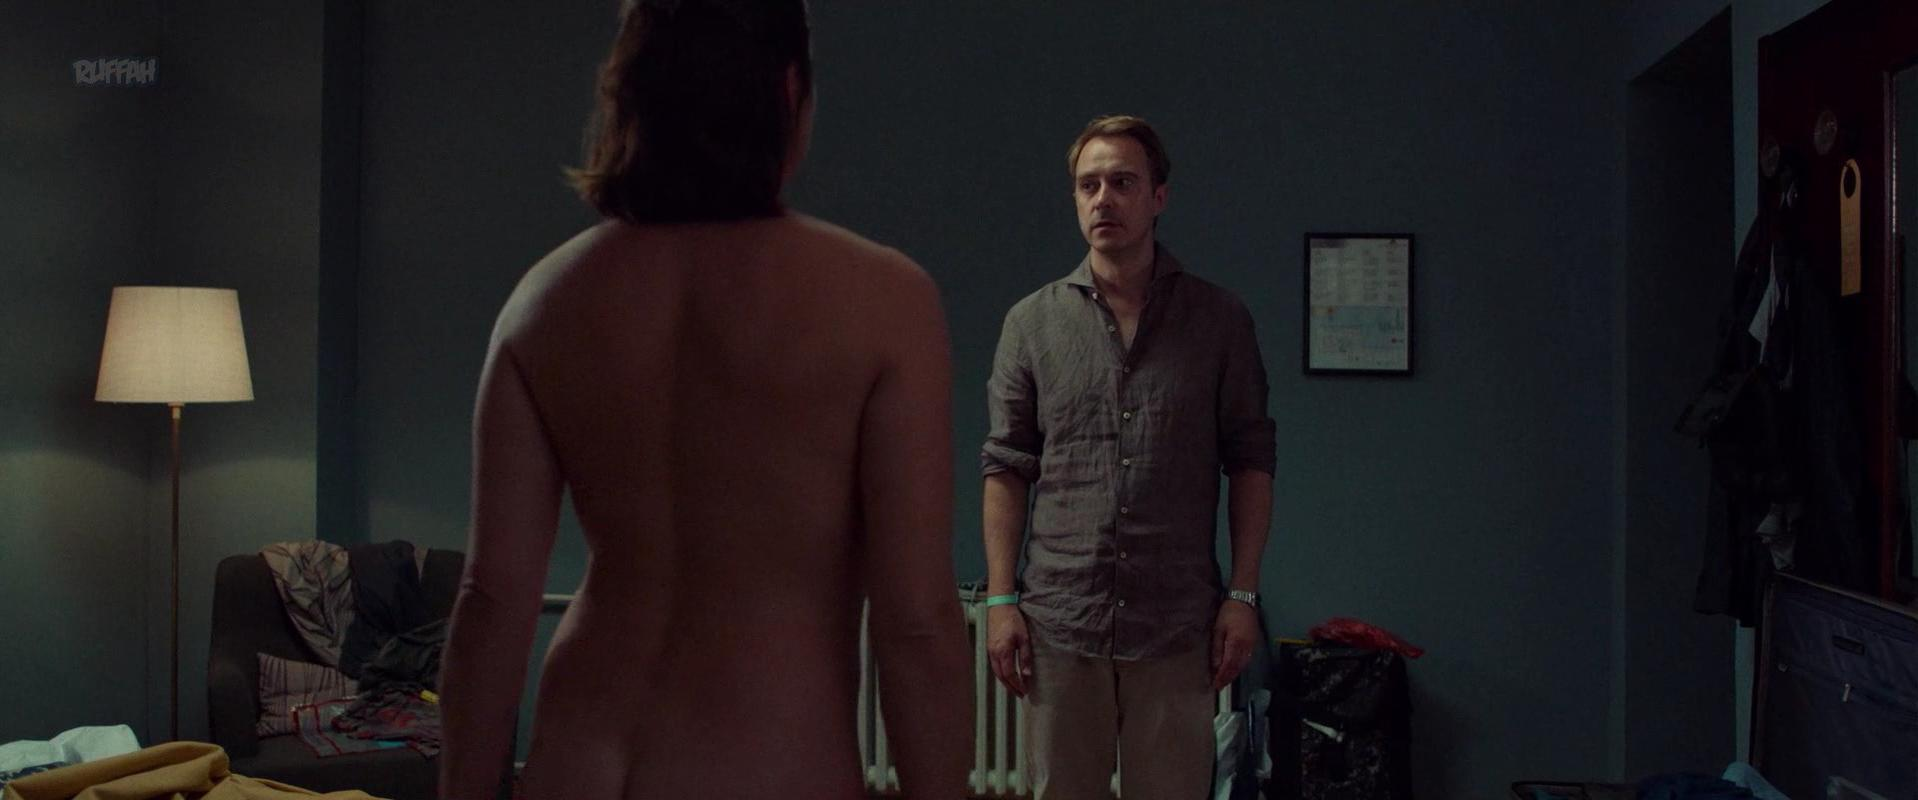 Jennie jacques ass and nipples in desperate romantics series - 2 2